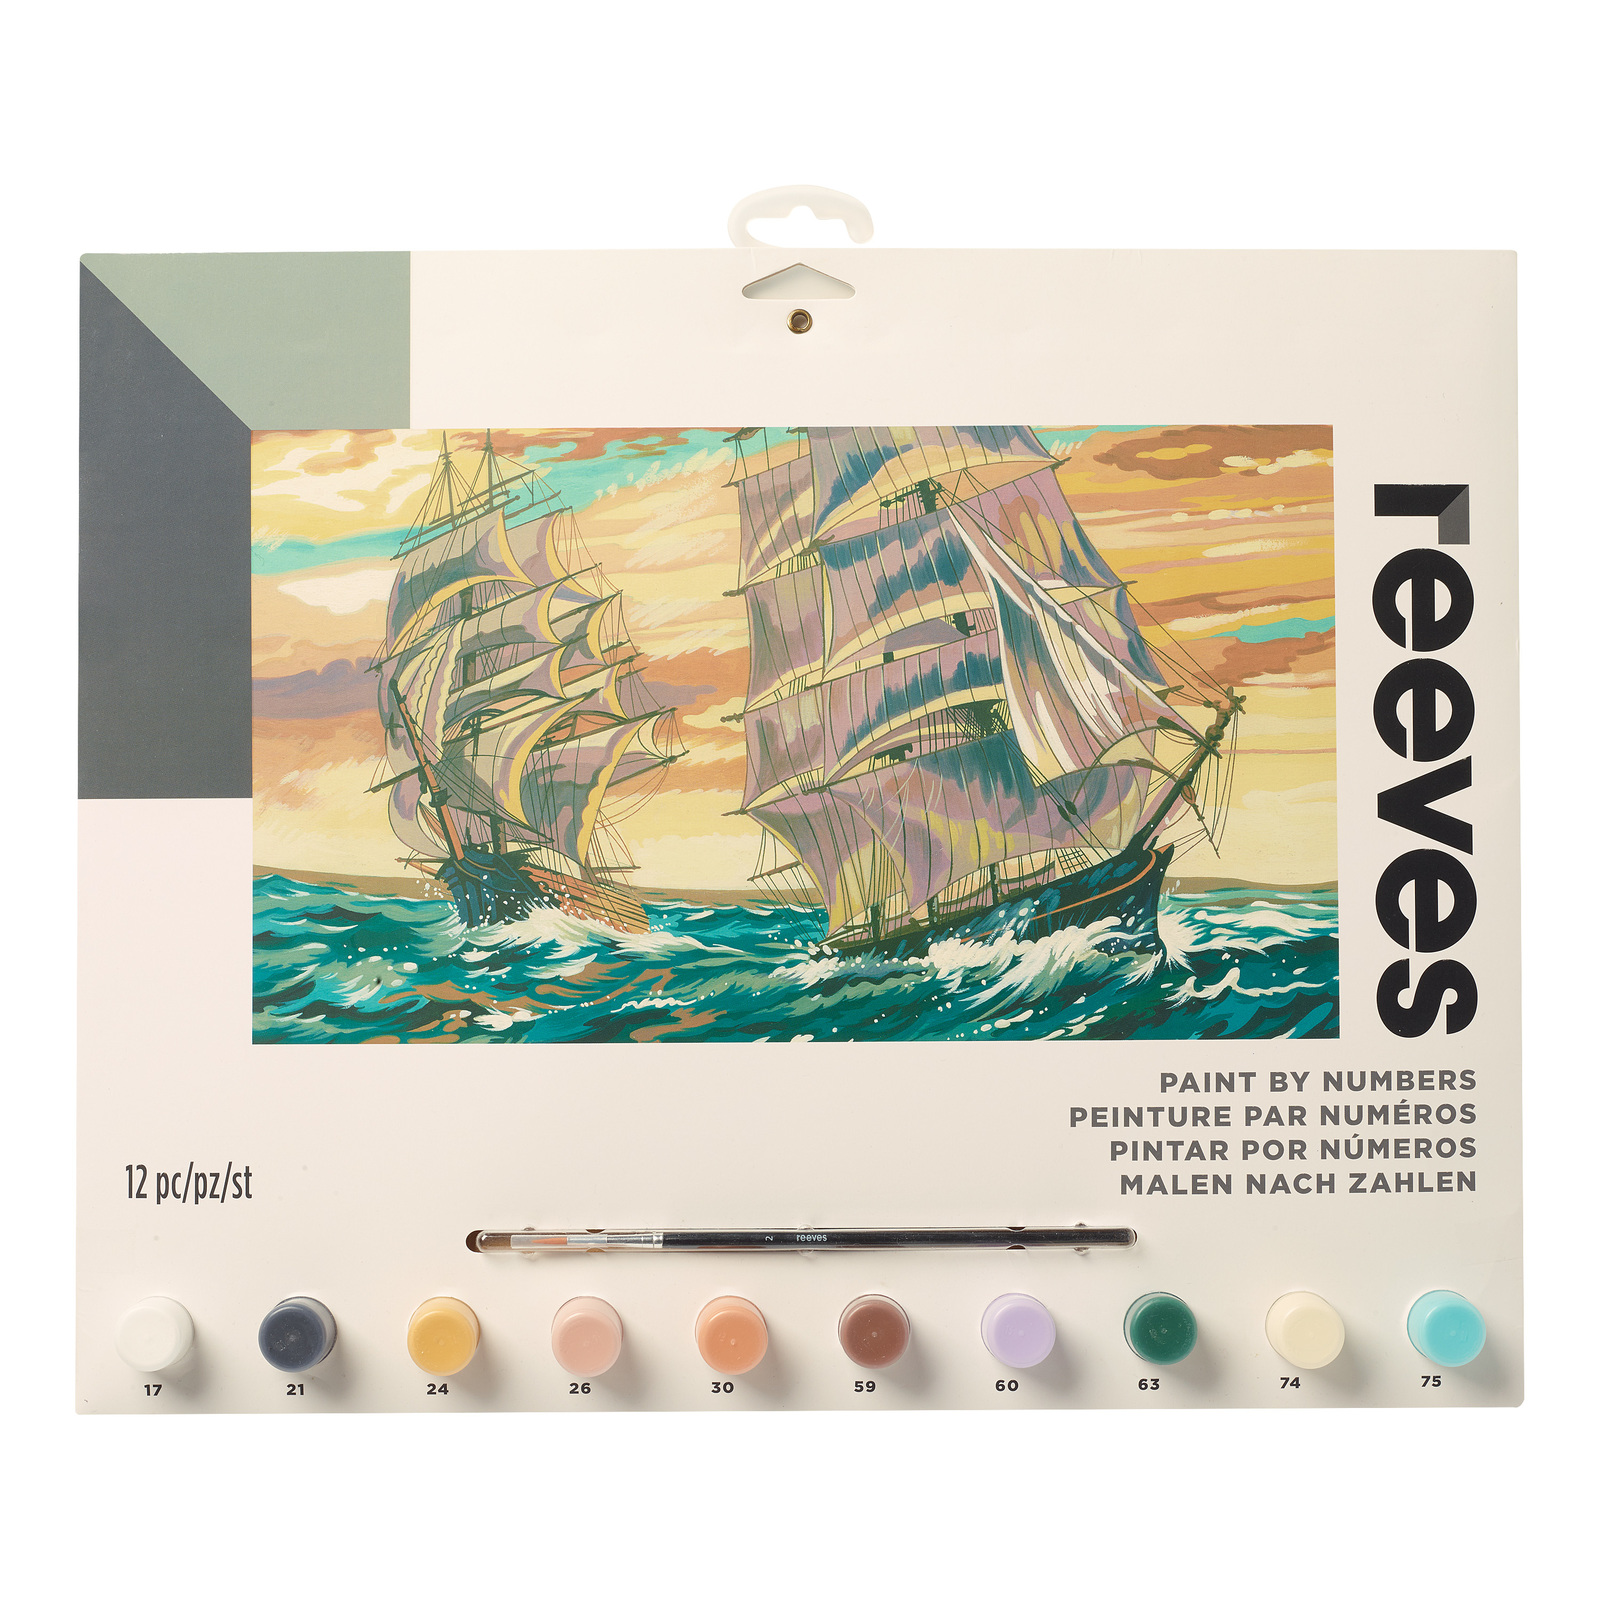 Reeves: Paint by Numbers - Ships (Large) image